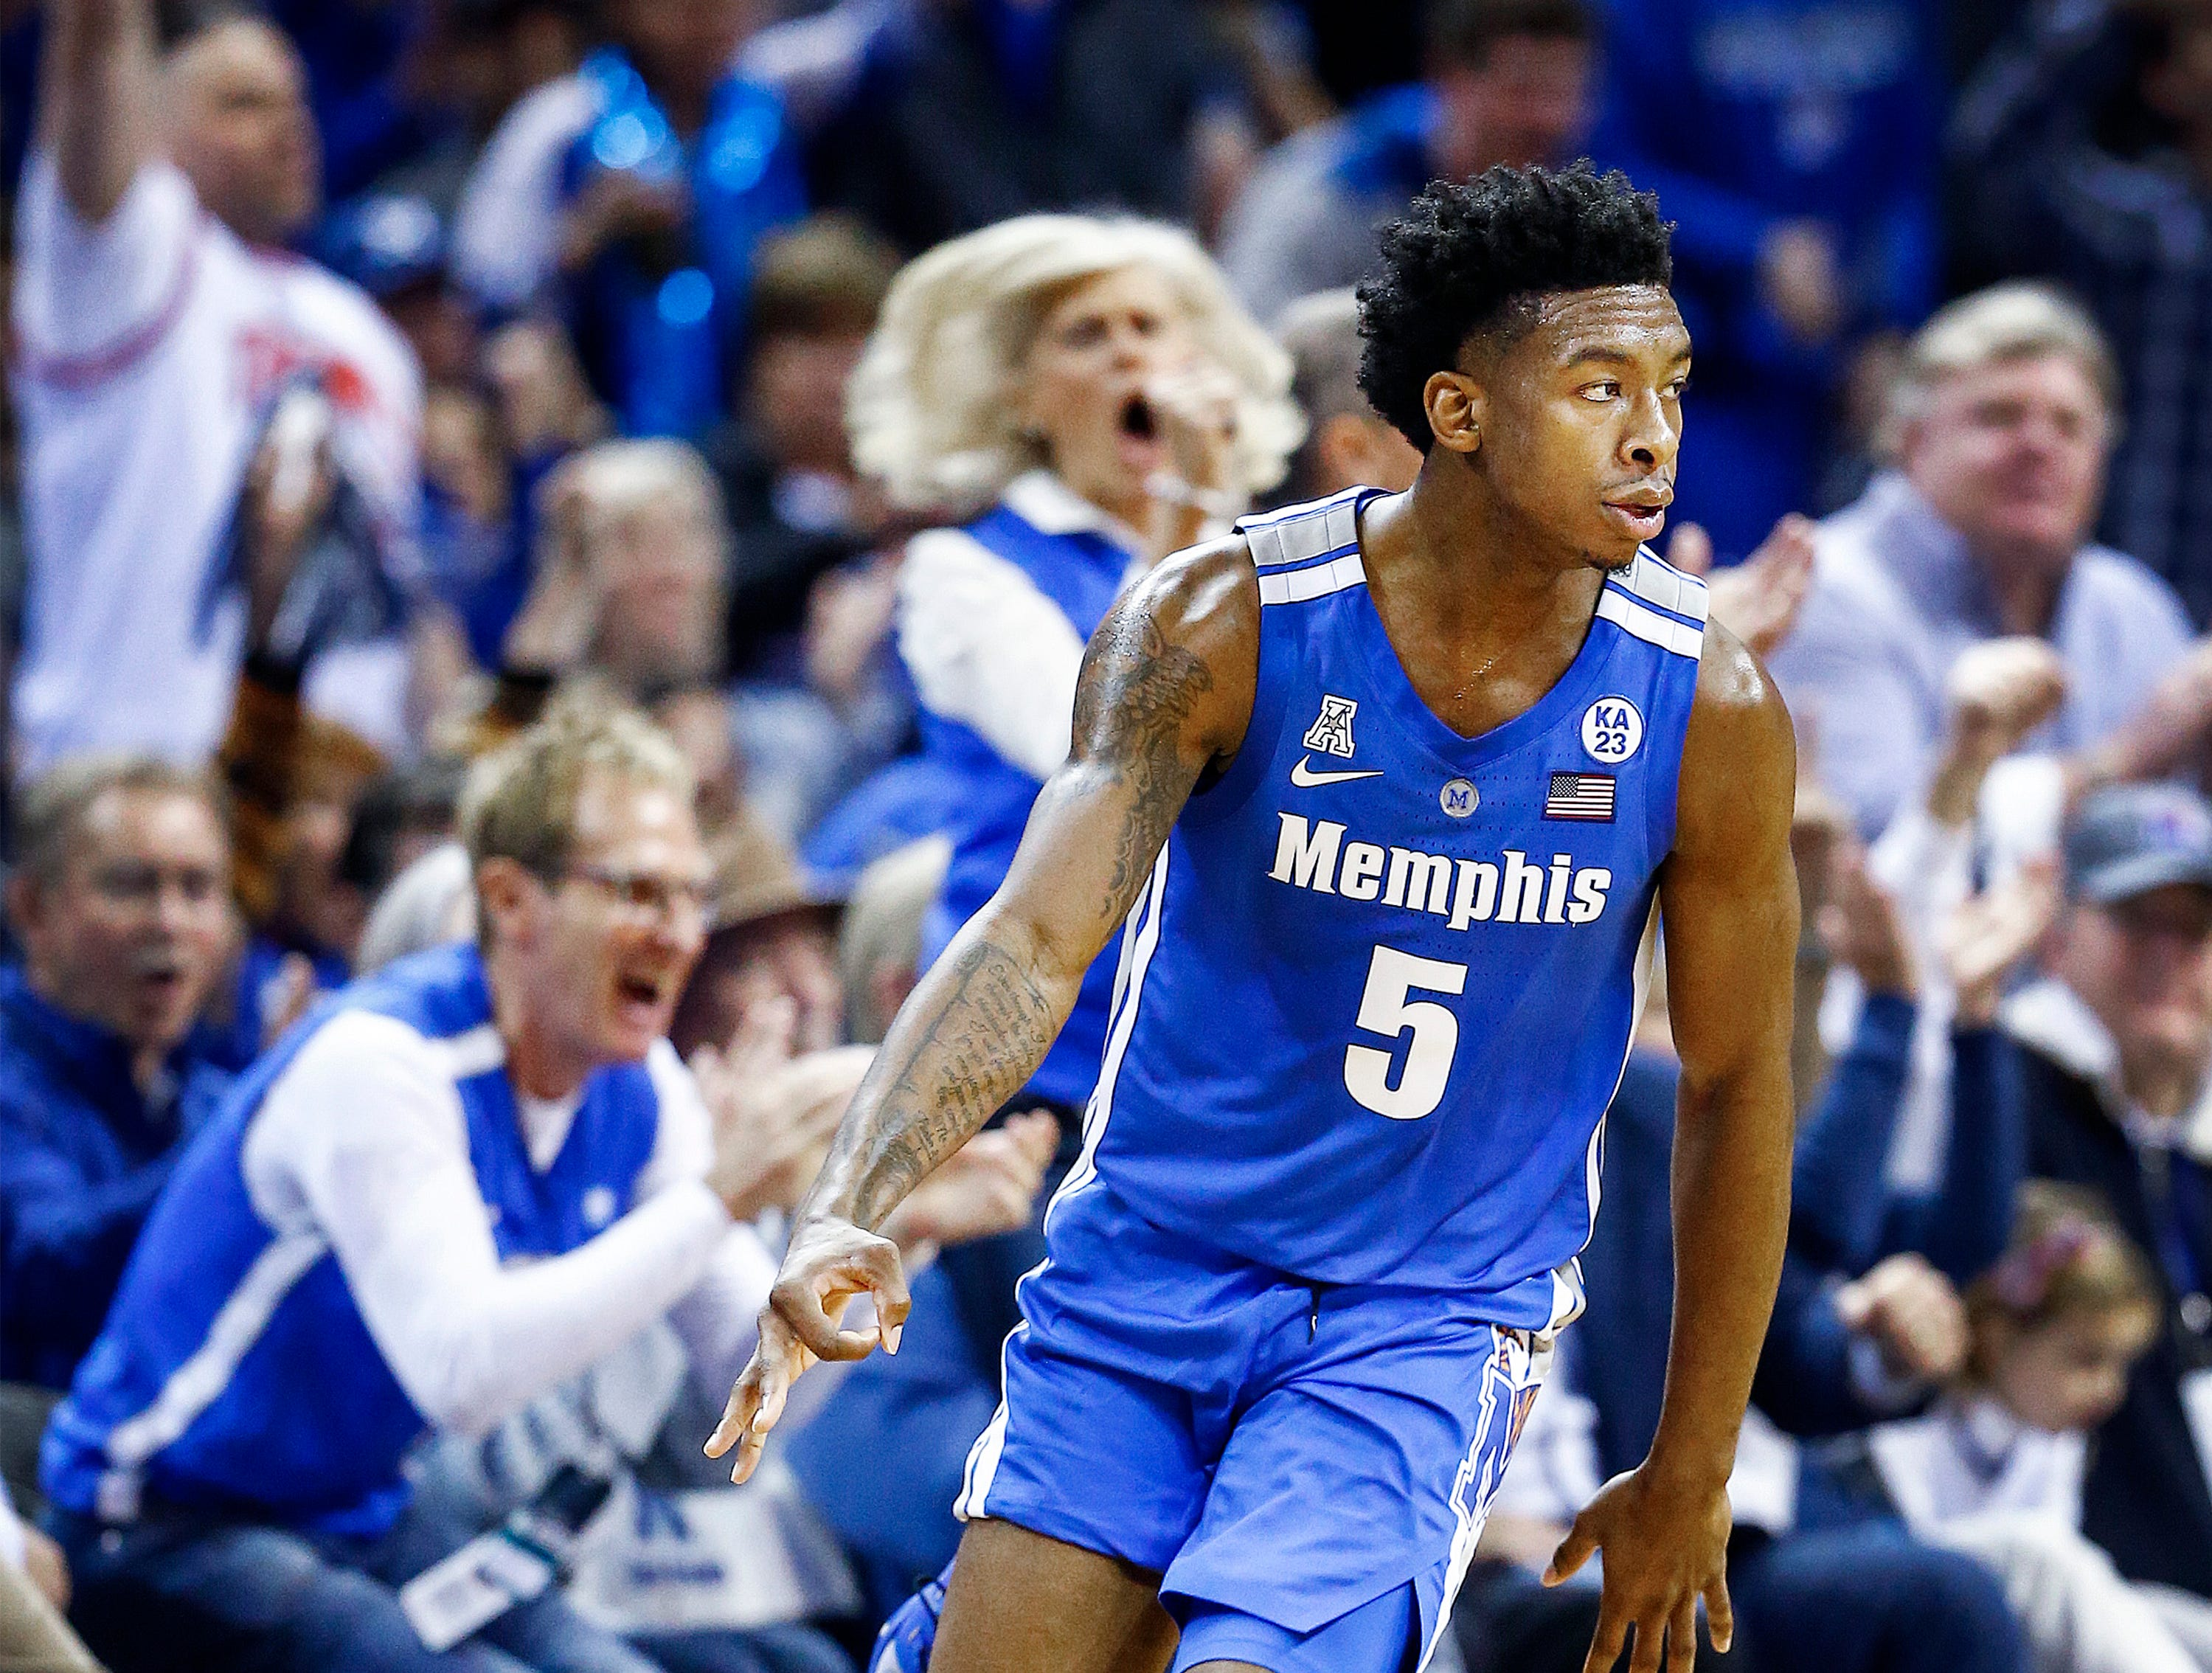 Memphis guard Kareem Brewton Jr. celebrates a made 3-pointer against Tennessee during action at the FedExForum, Saturday, December 15, 2018.